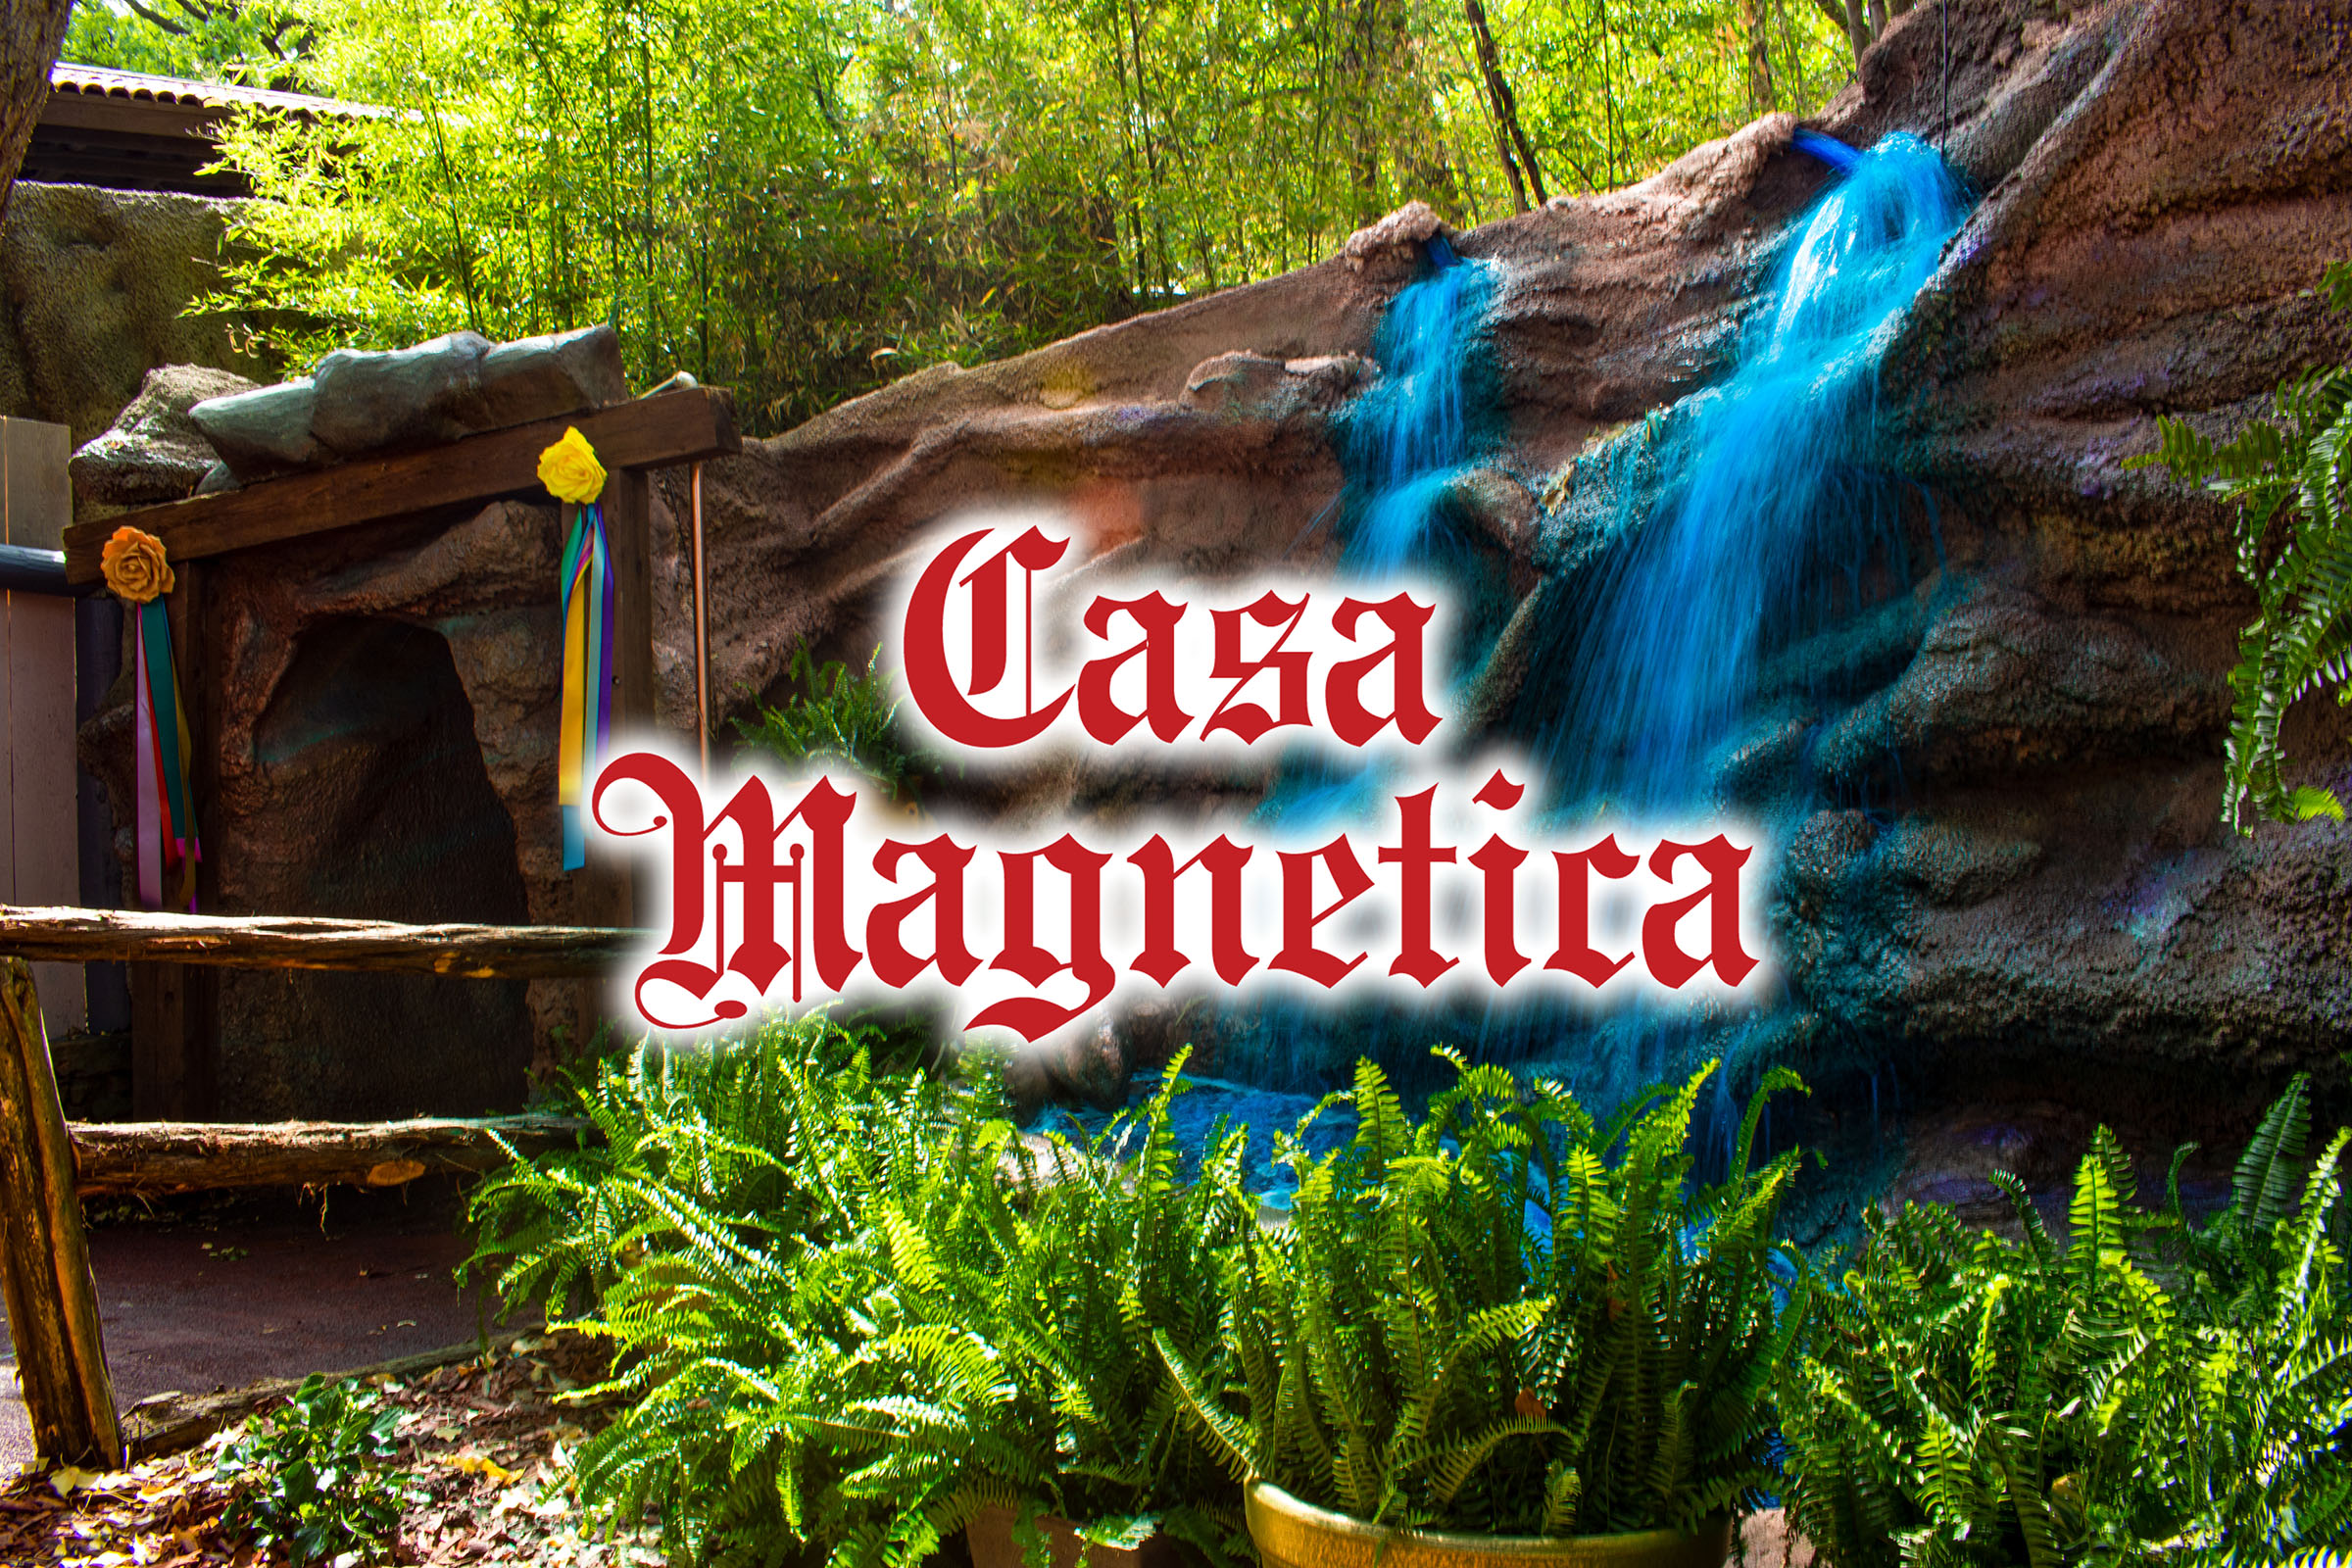 Casa Magnetica at Six Flags Over Texas